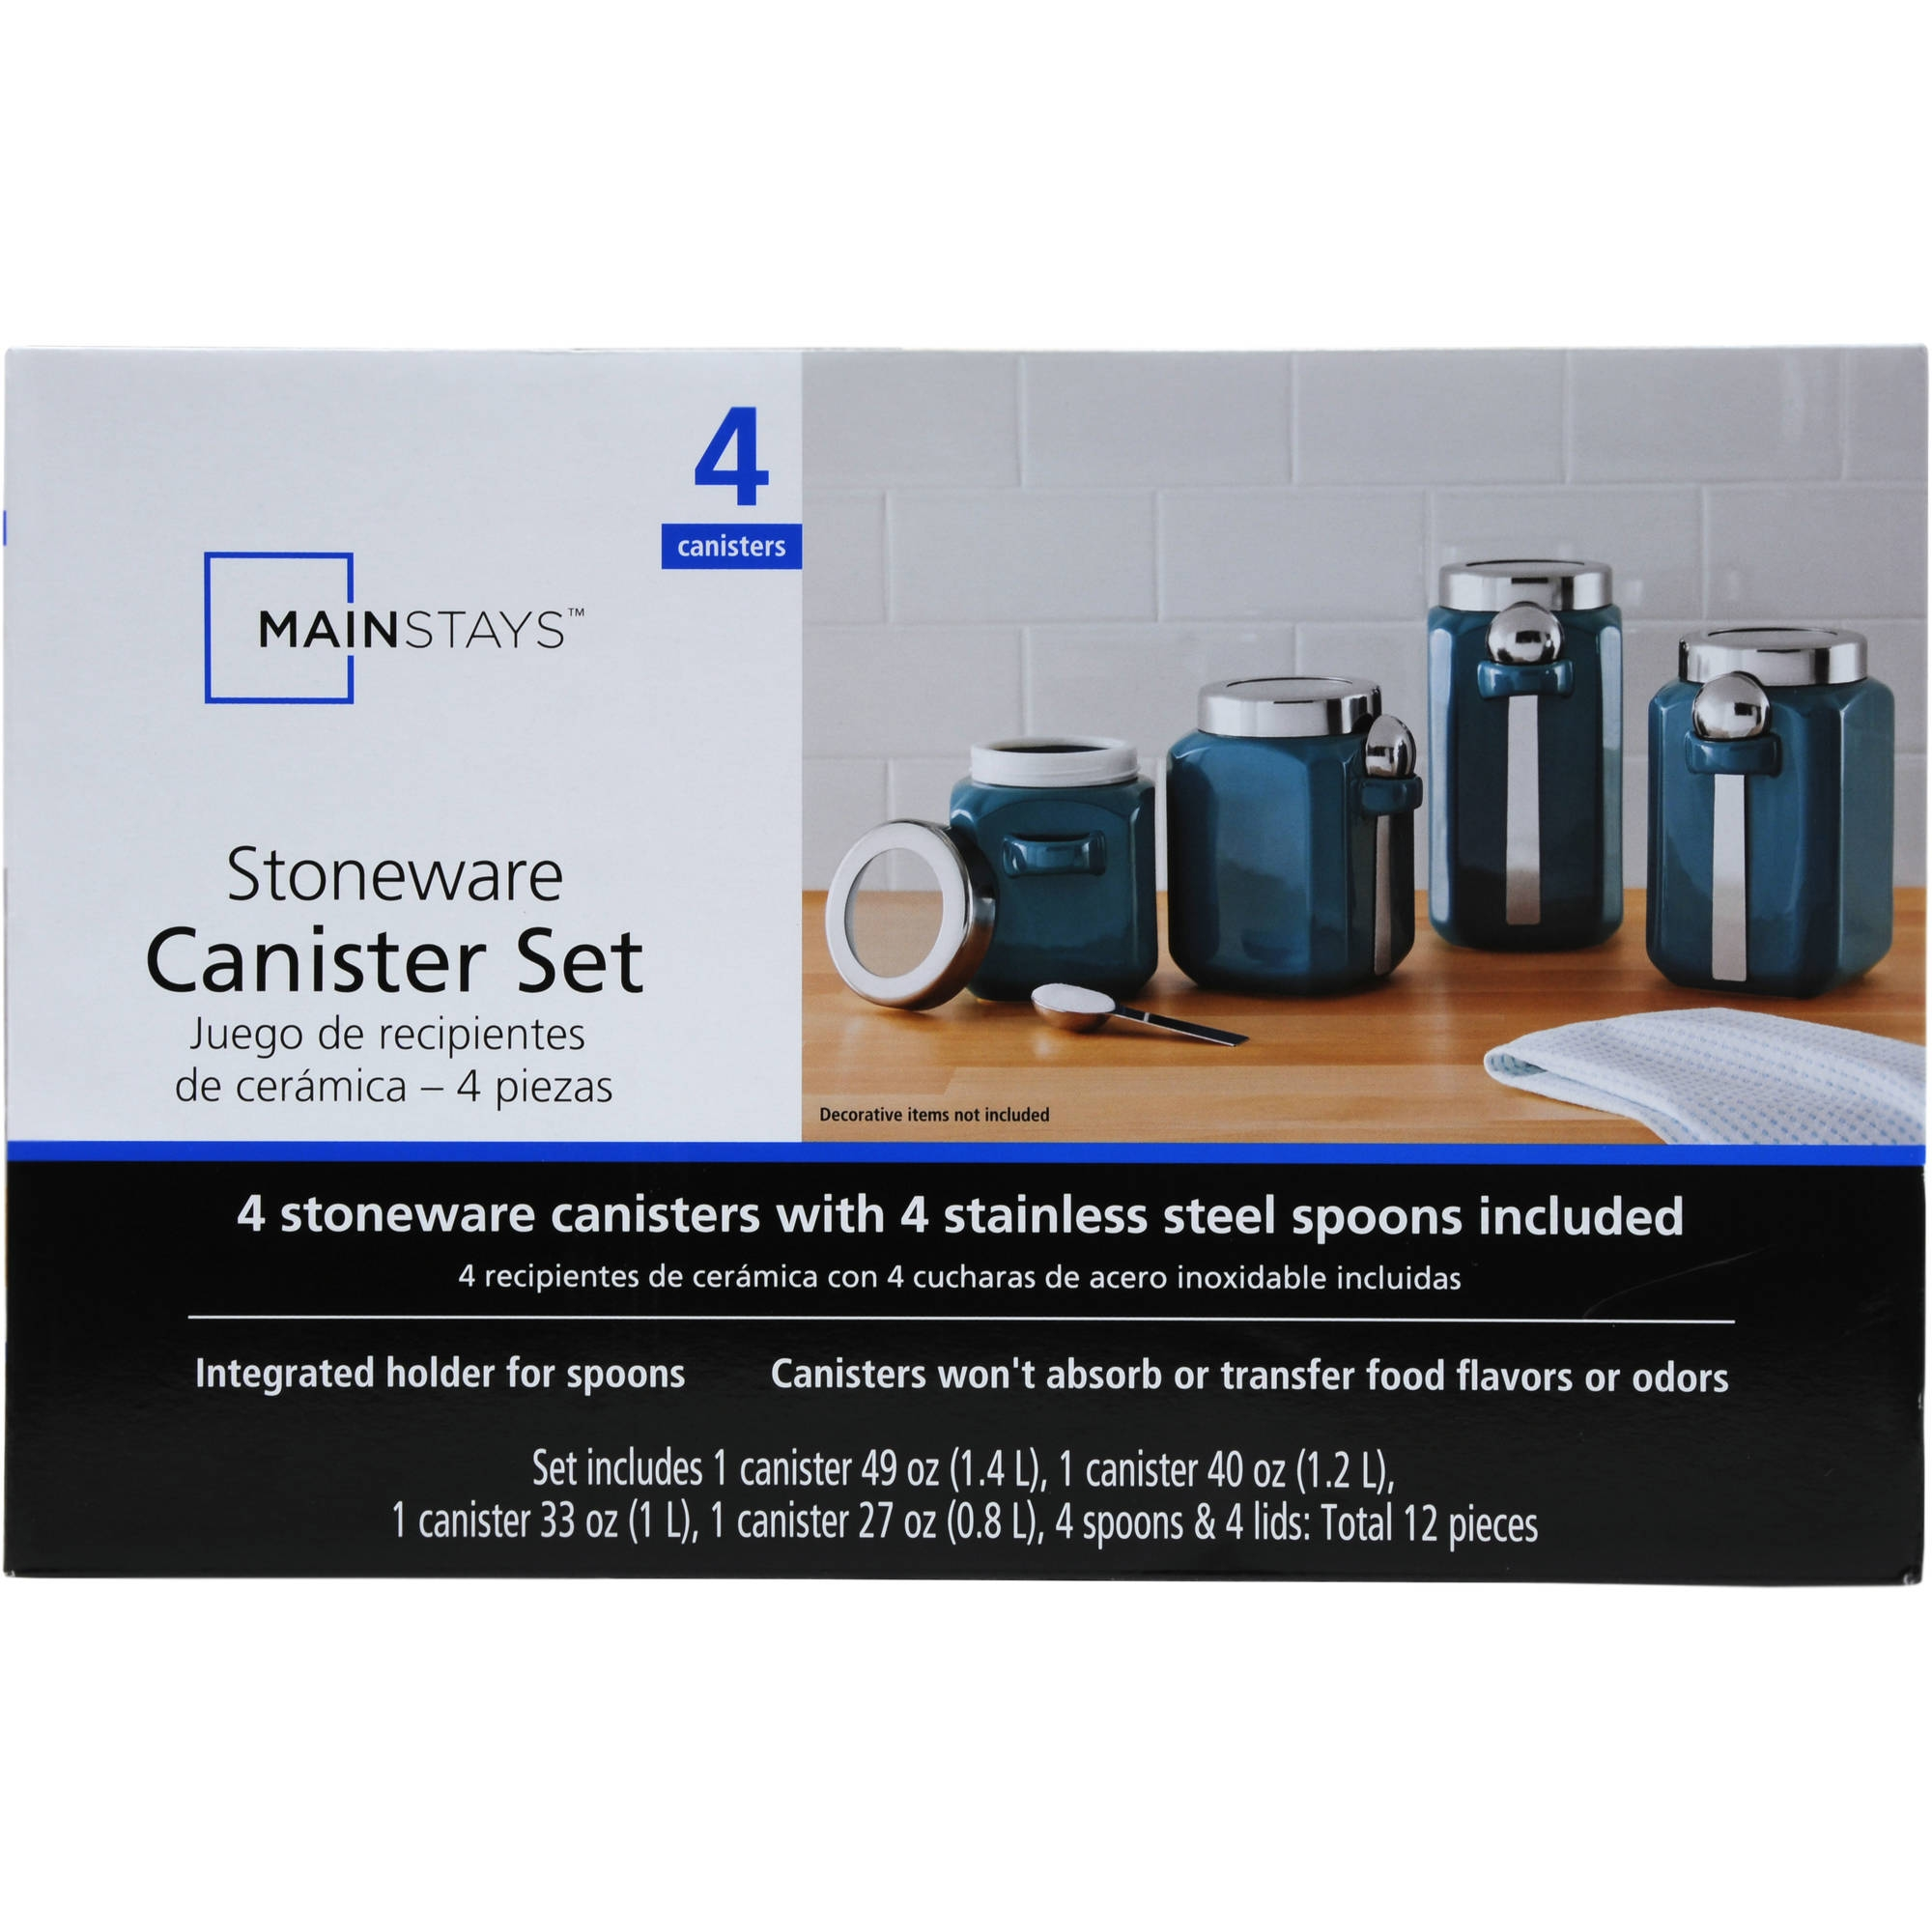 Mainstays Red Stoneware Kitchen Canister Set 4pc Mainstays Red Stoneware Kitchen Canister Set 4pc mainstays pantry durable ceramic for daily use contemporary 2000 X 2000